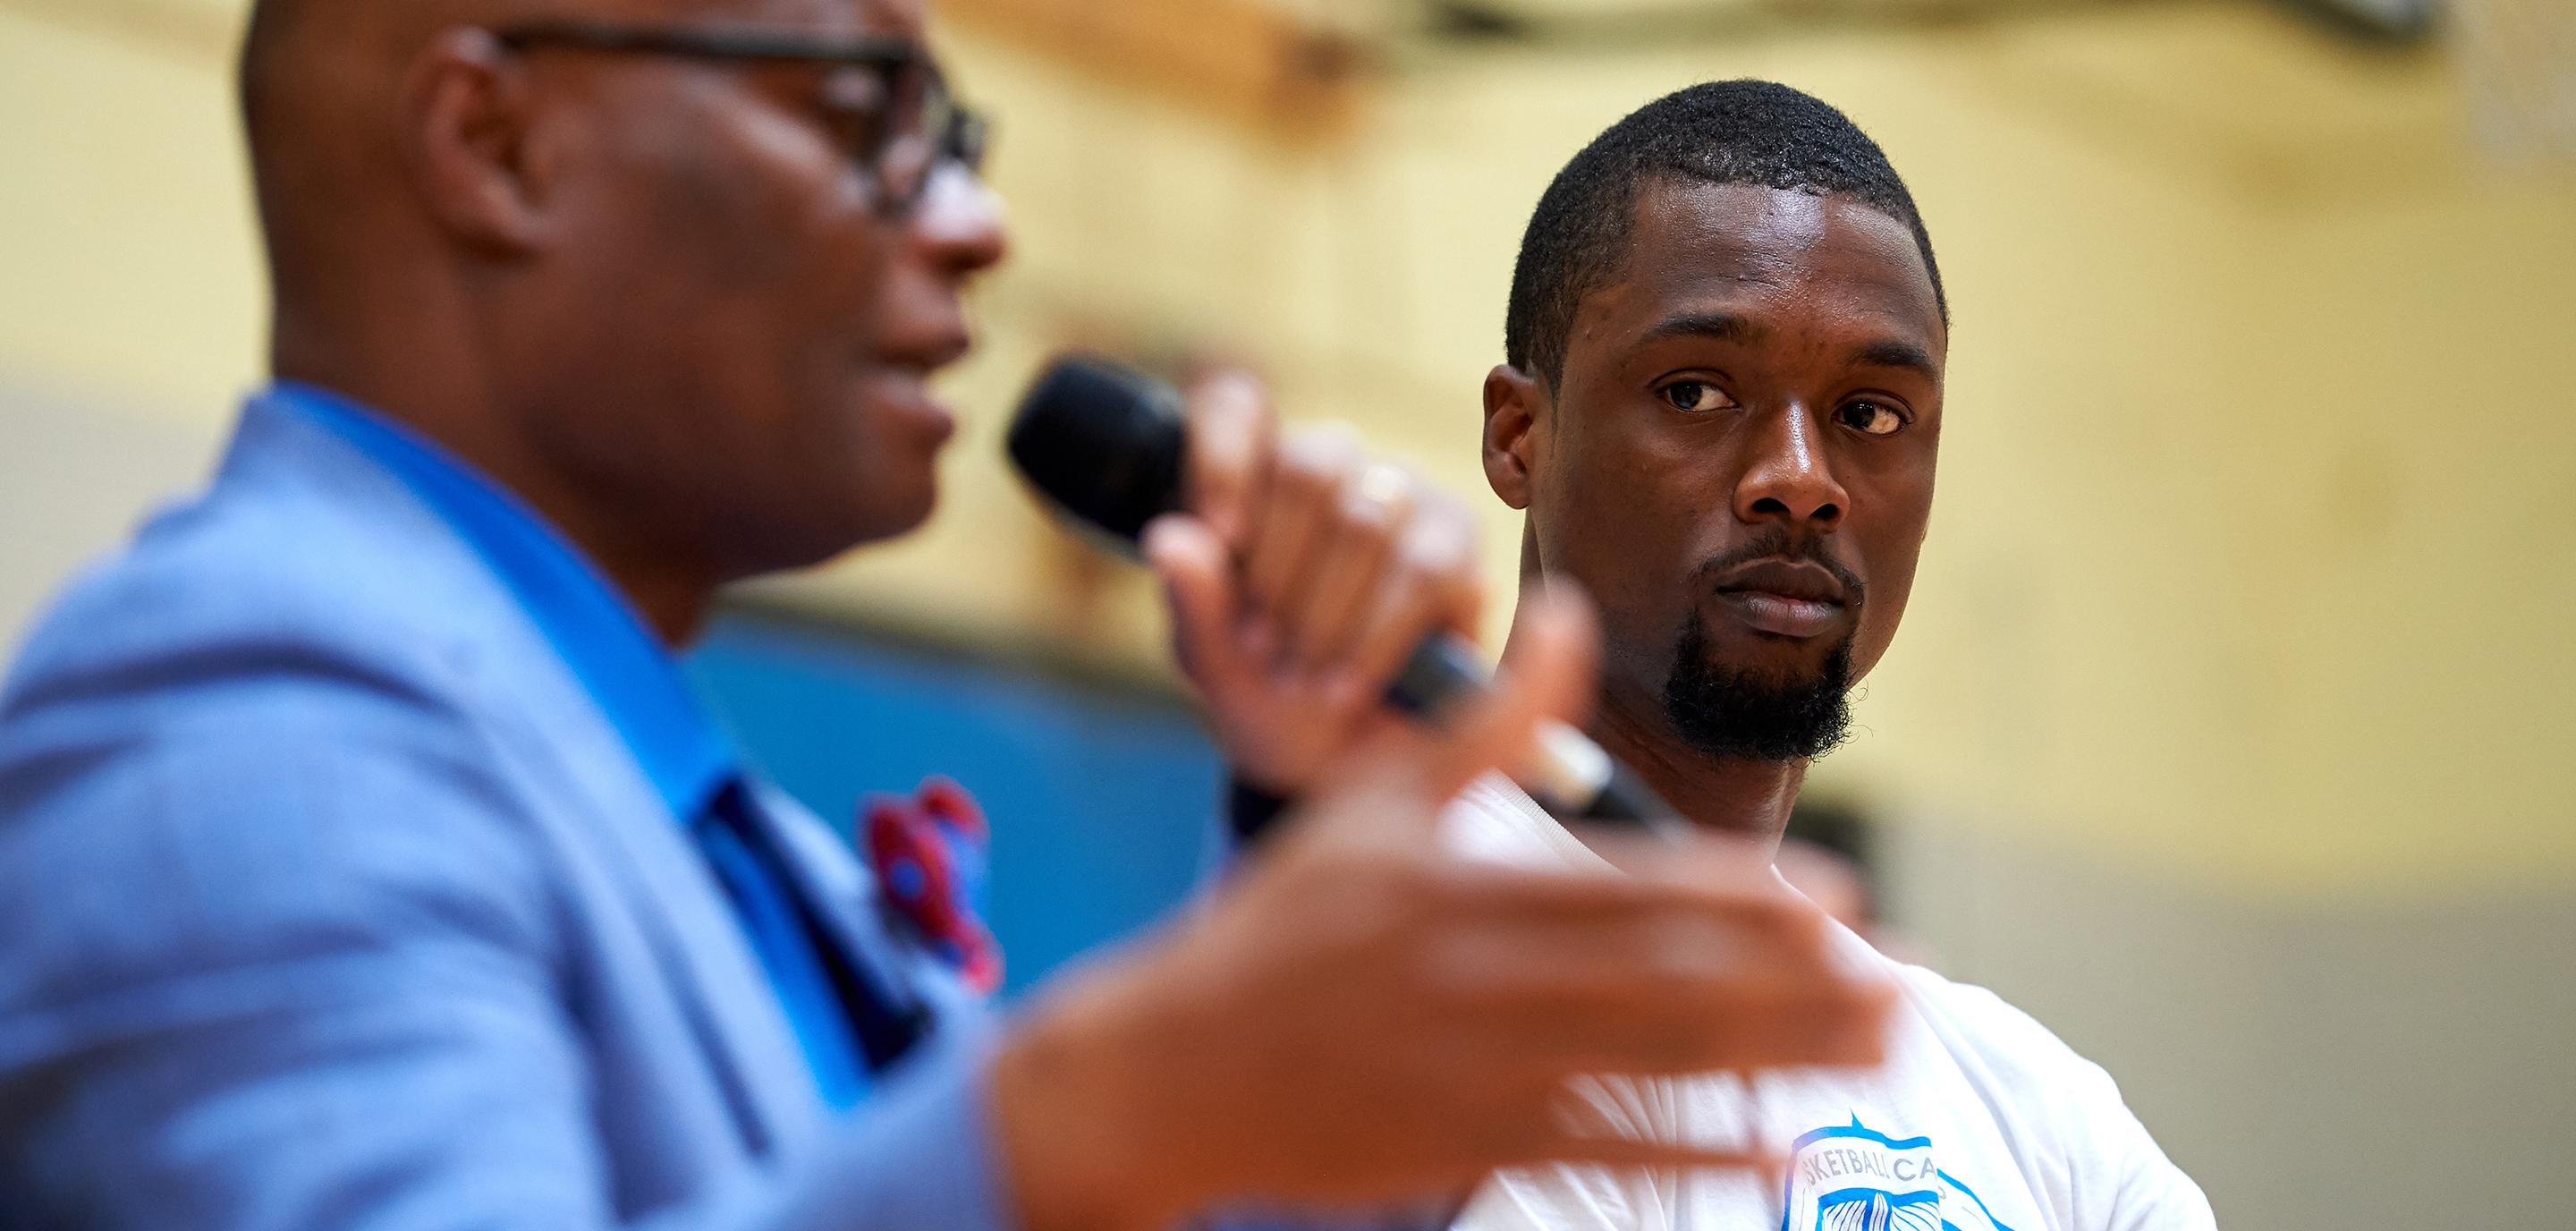 Harrison Barnes The Players Tribune The Voice Of The Game